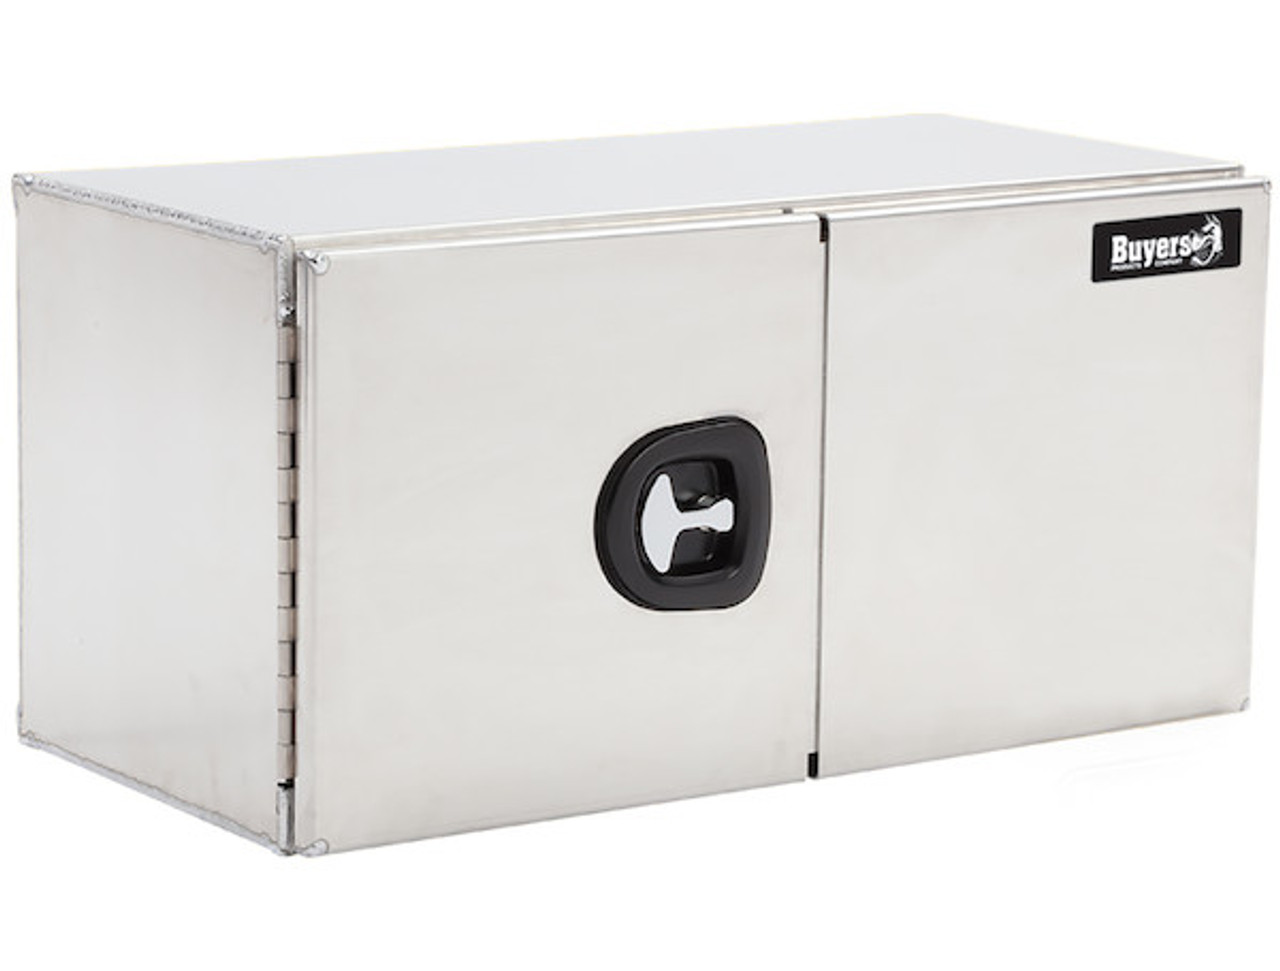 "1705305 BUYERS PRODUCTS SMOOTH ALUMINUM UNDERBODY TOOLBOX WITH BARN DOOR 18""HX18""DX36""W"